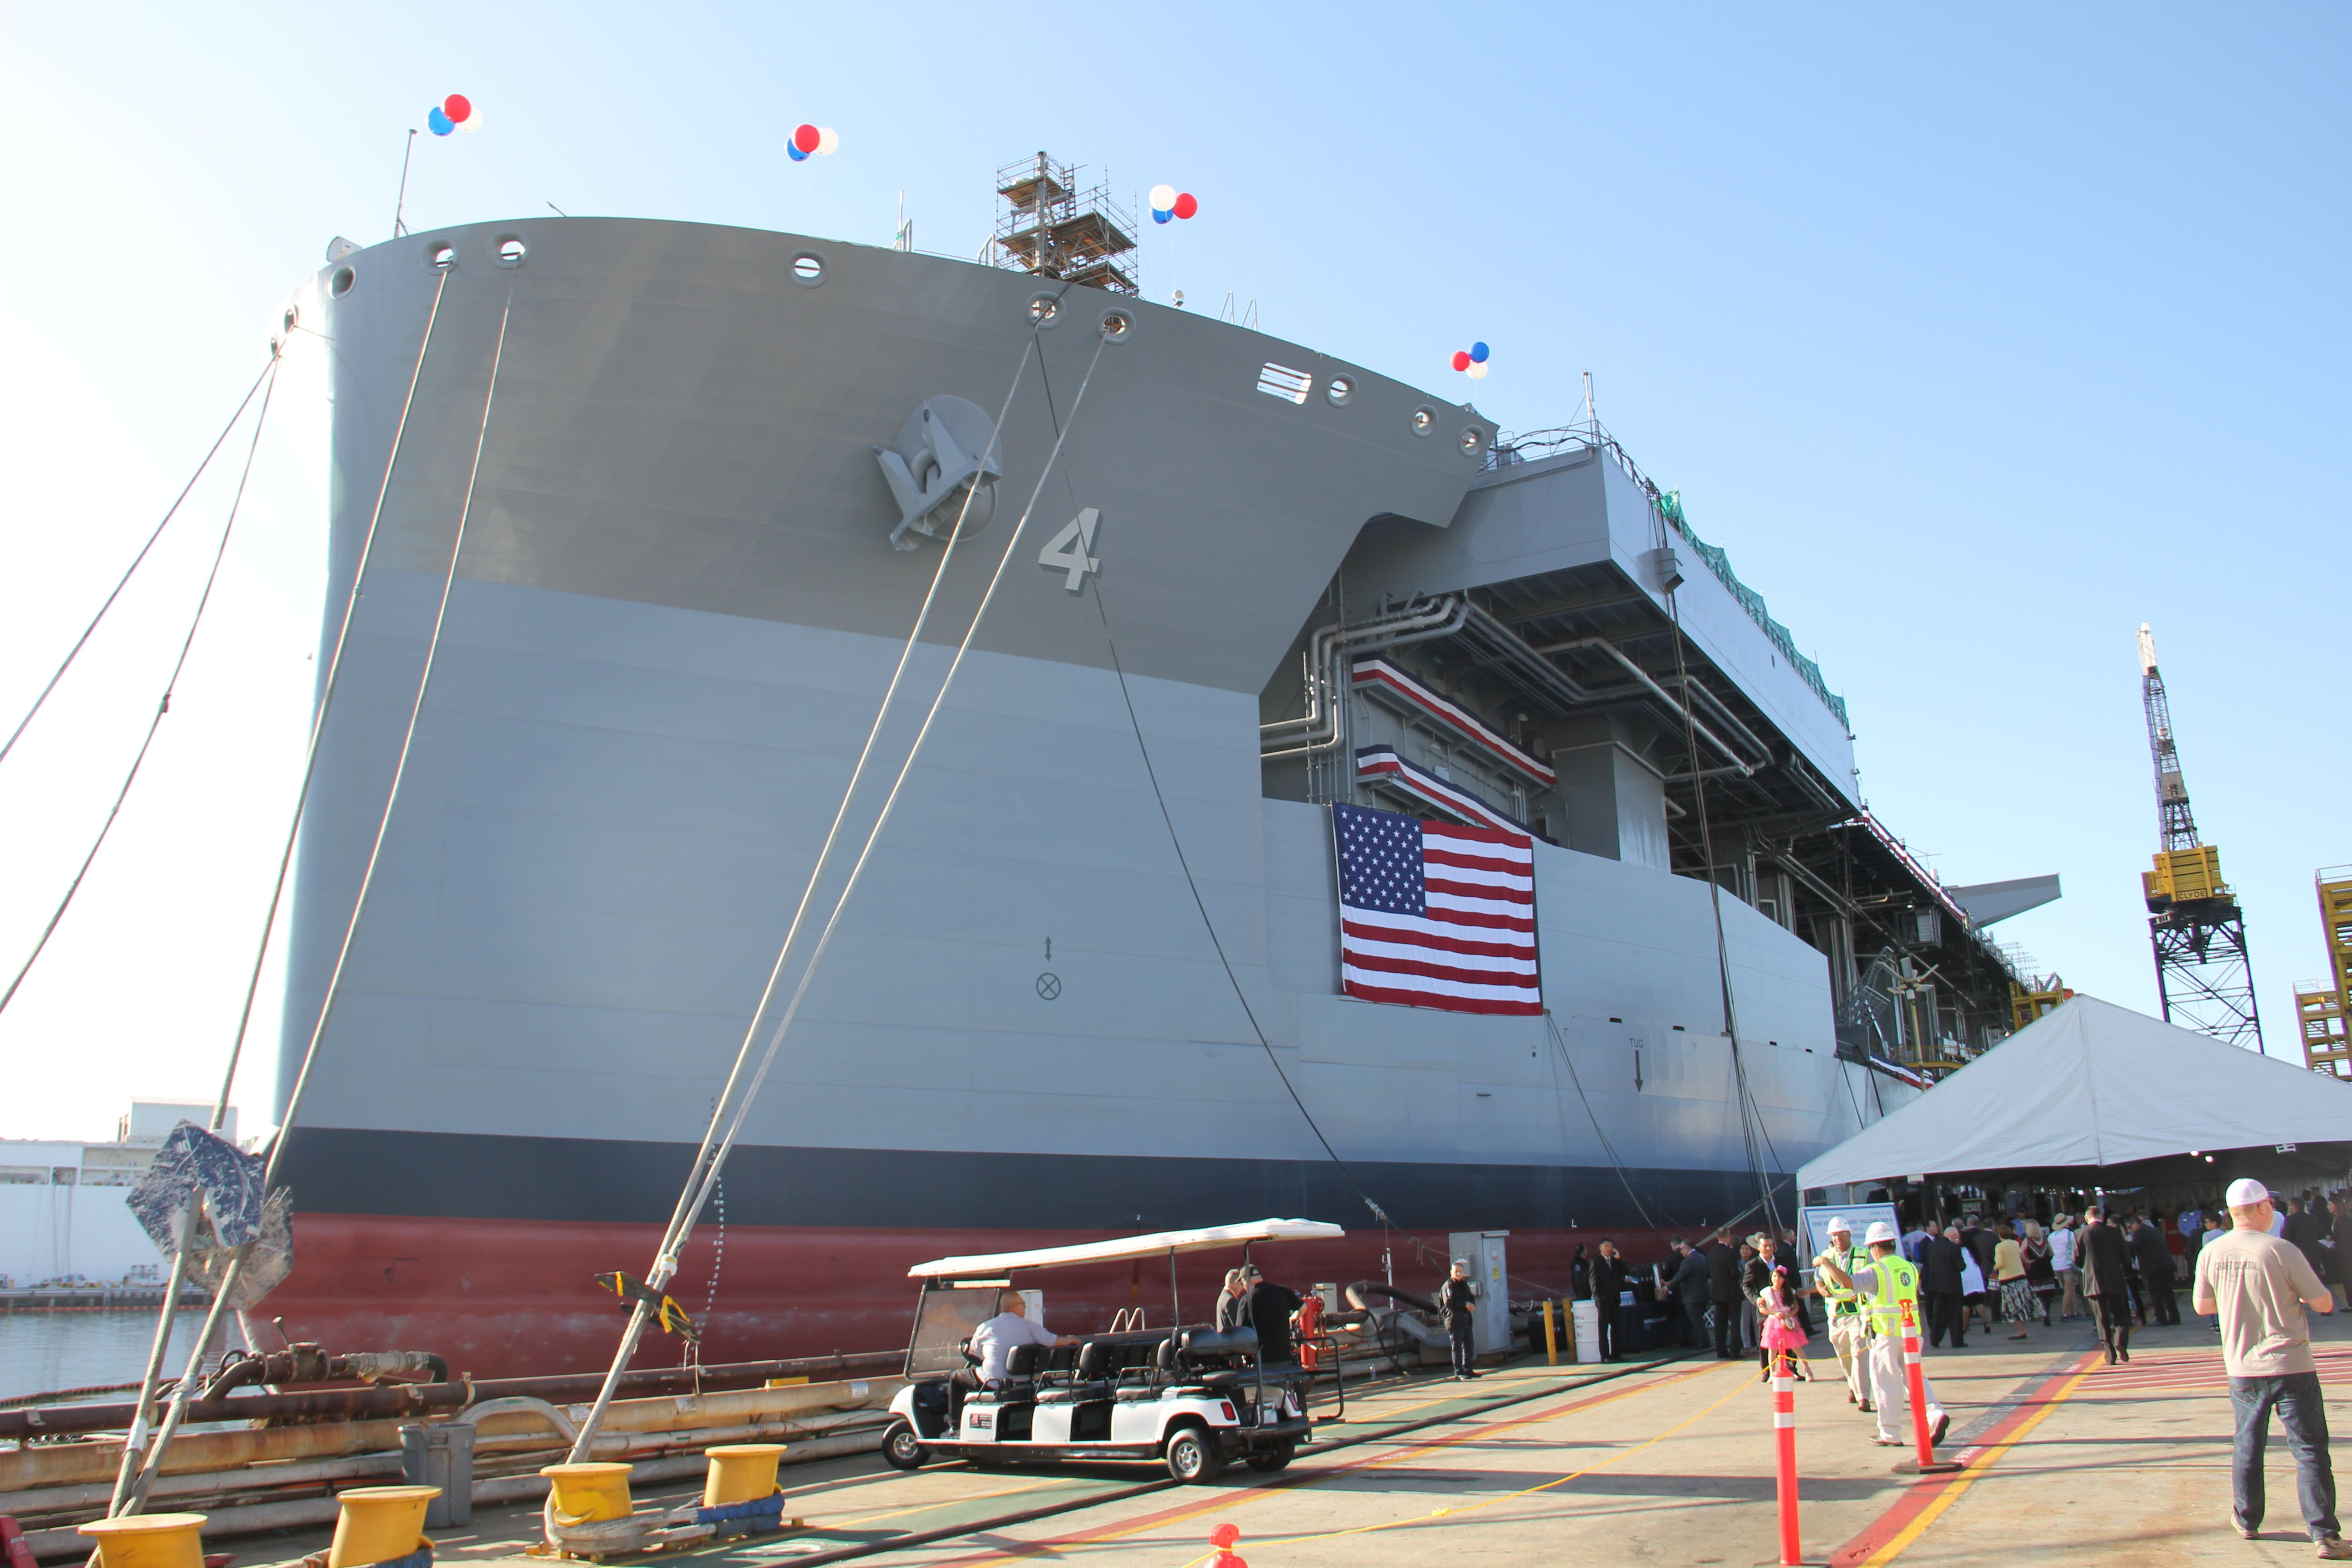 Who You Calling Ugly? The Navy's New Ship Is a Floating Swiss Army Knife